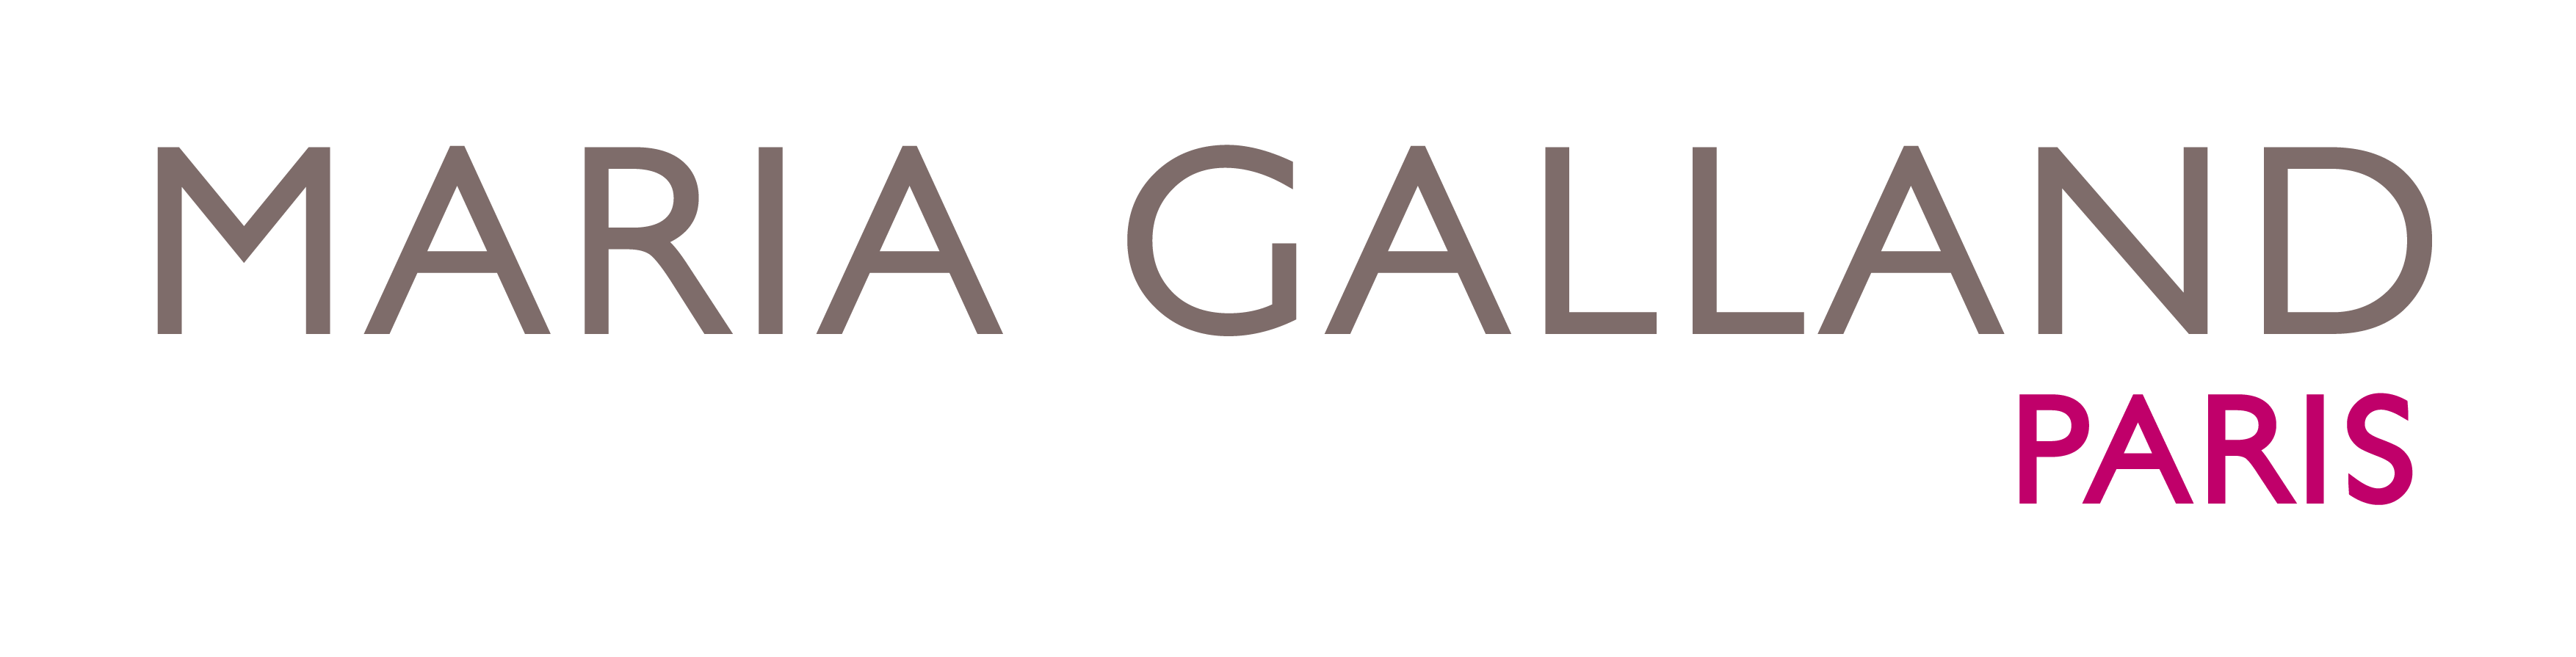 MARIA-GALLAND-PARIS_Logo